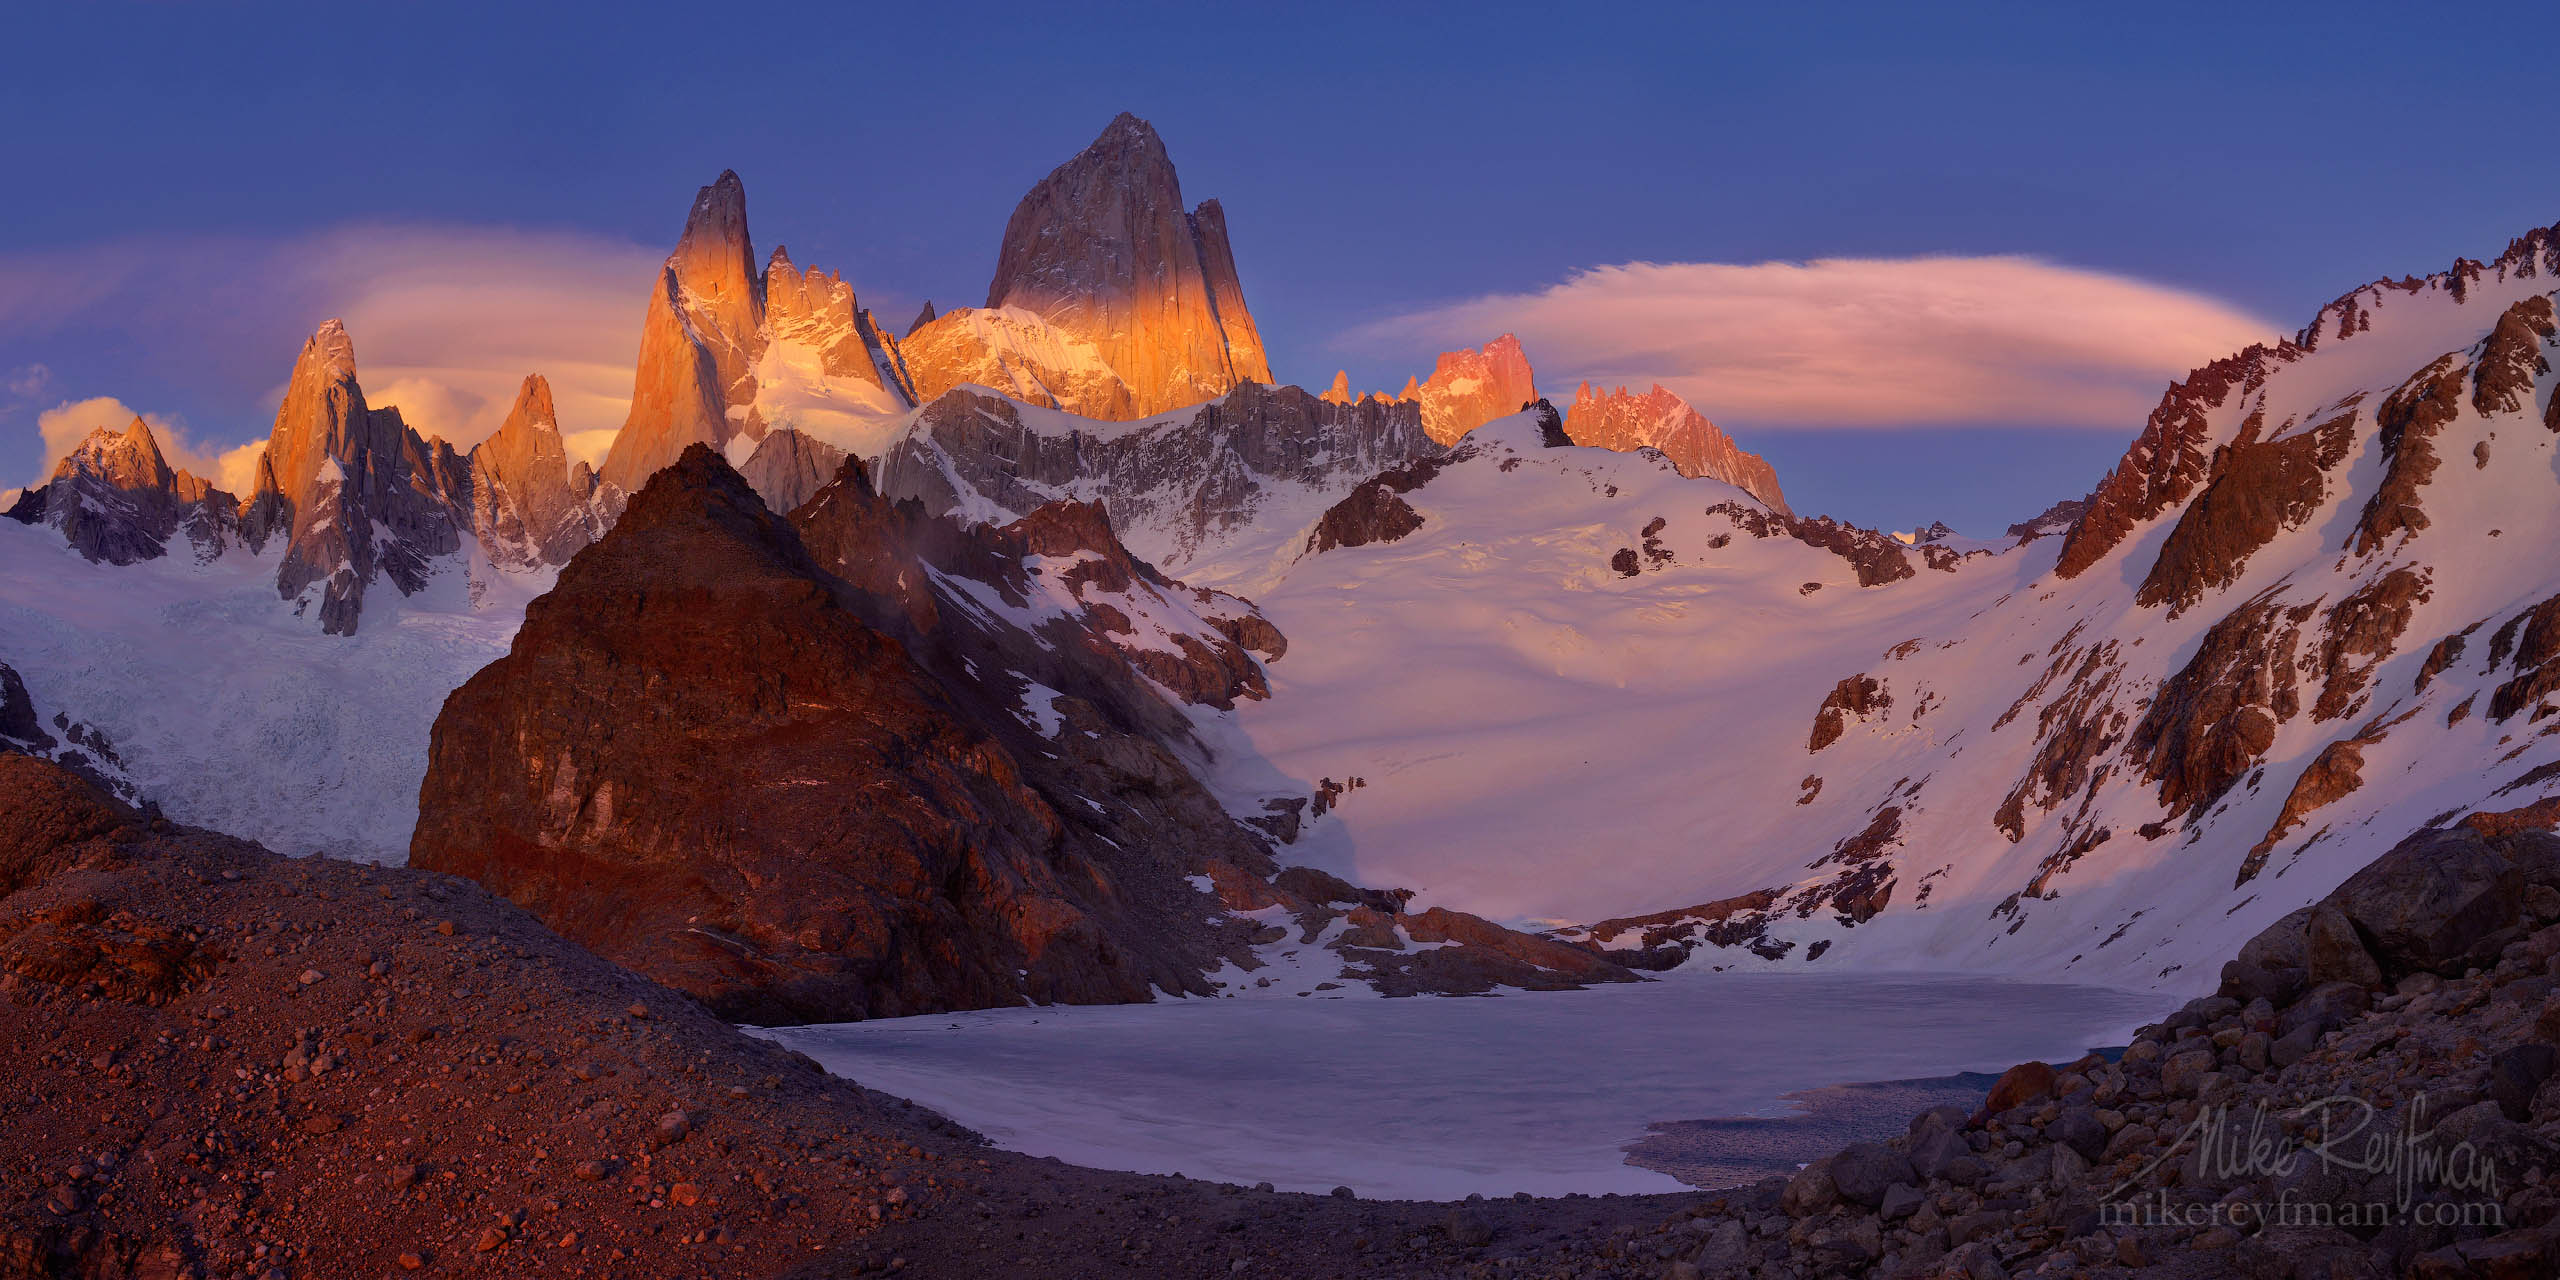 Windy sunrise at Laguna de Los Tres. Mount Fitzroy massif. Andes. Los Glaciares National Park, Patagonia, Argentina. P12-MRD8C4532-33-Pano - Selected panoramic images with 2:1 aspect ratio - Mike Reyfman Photography